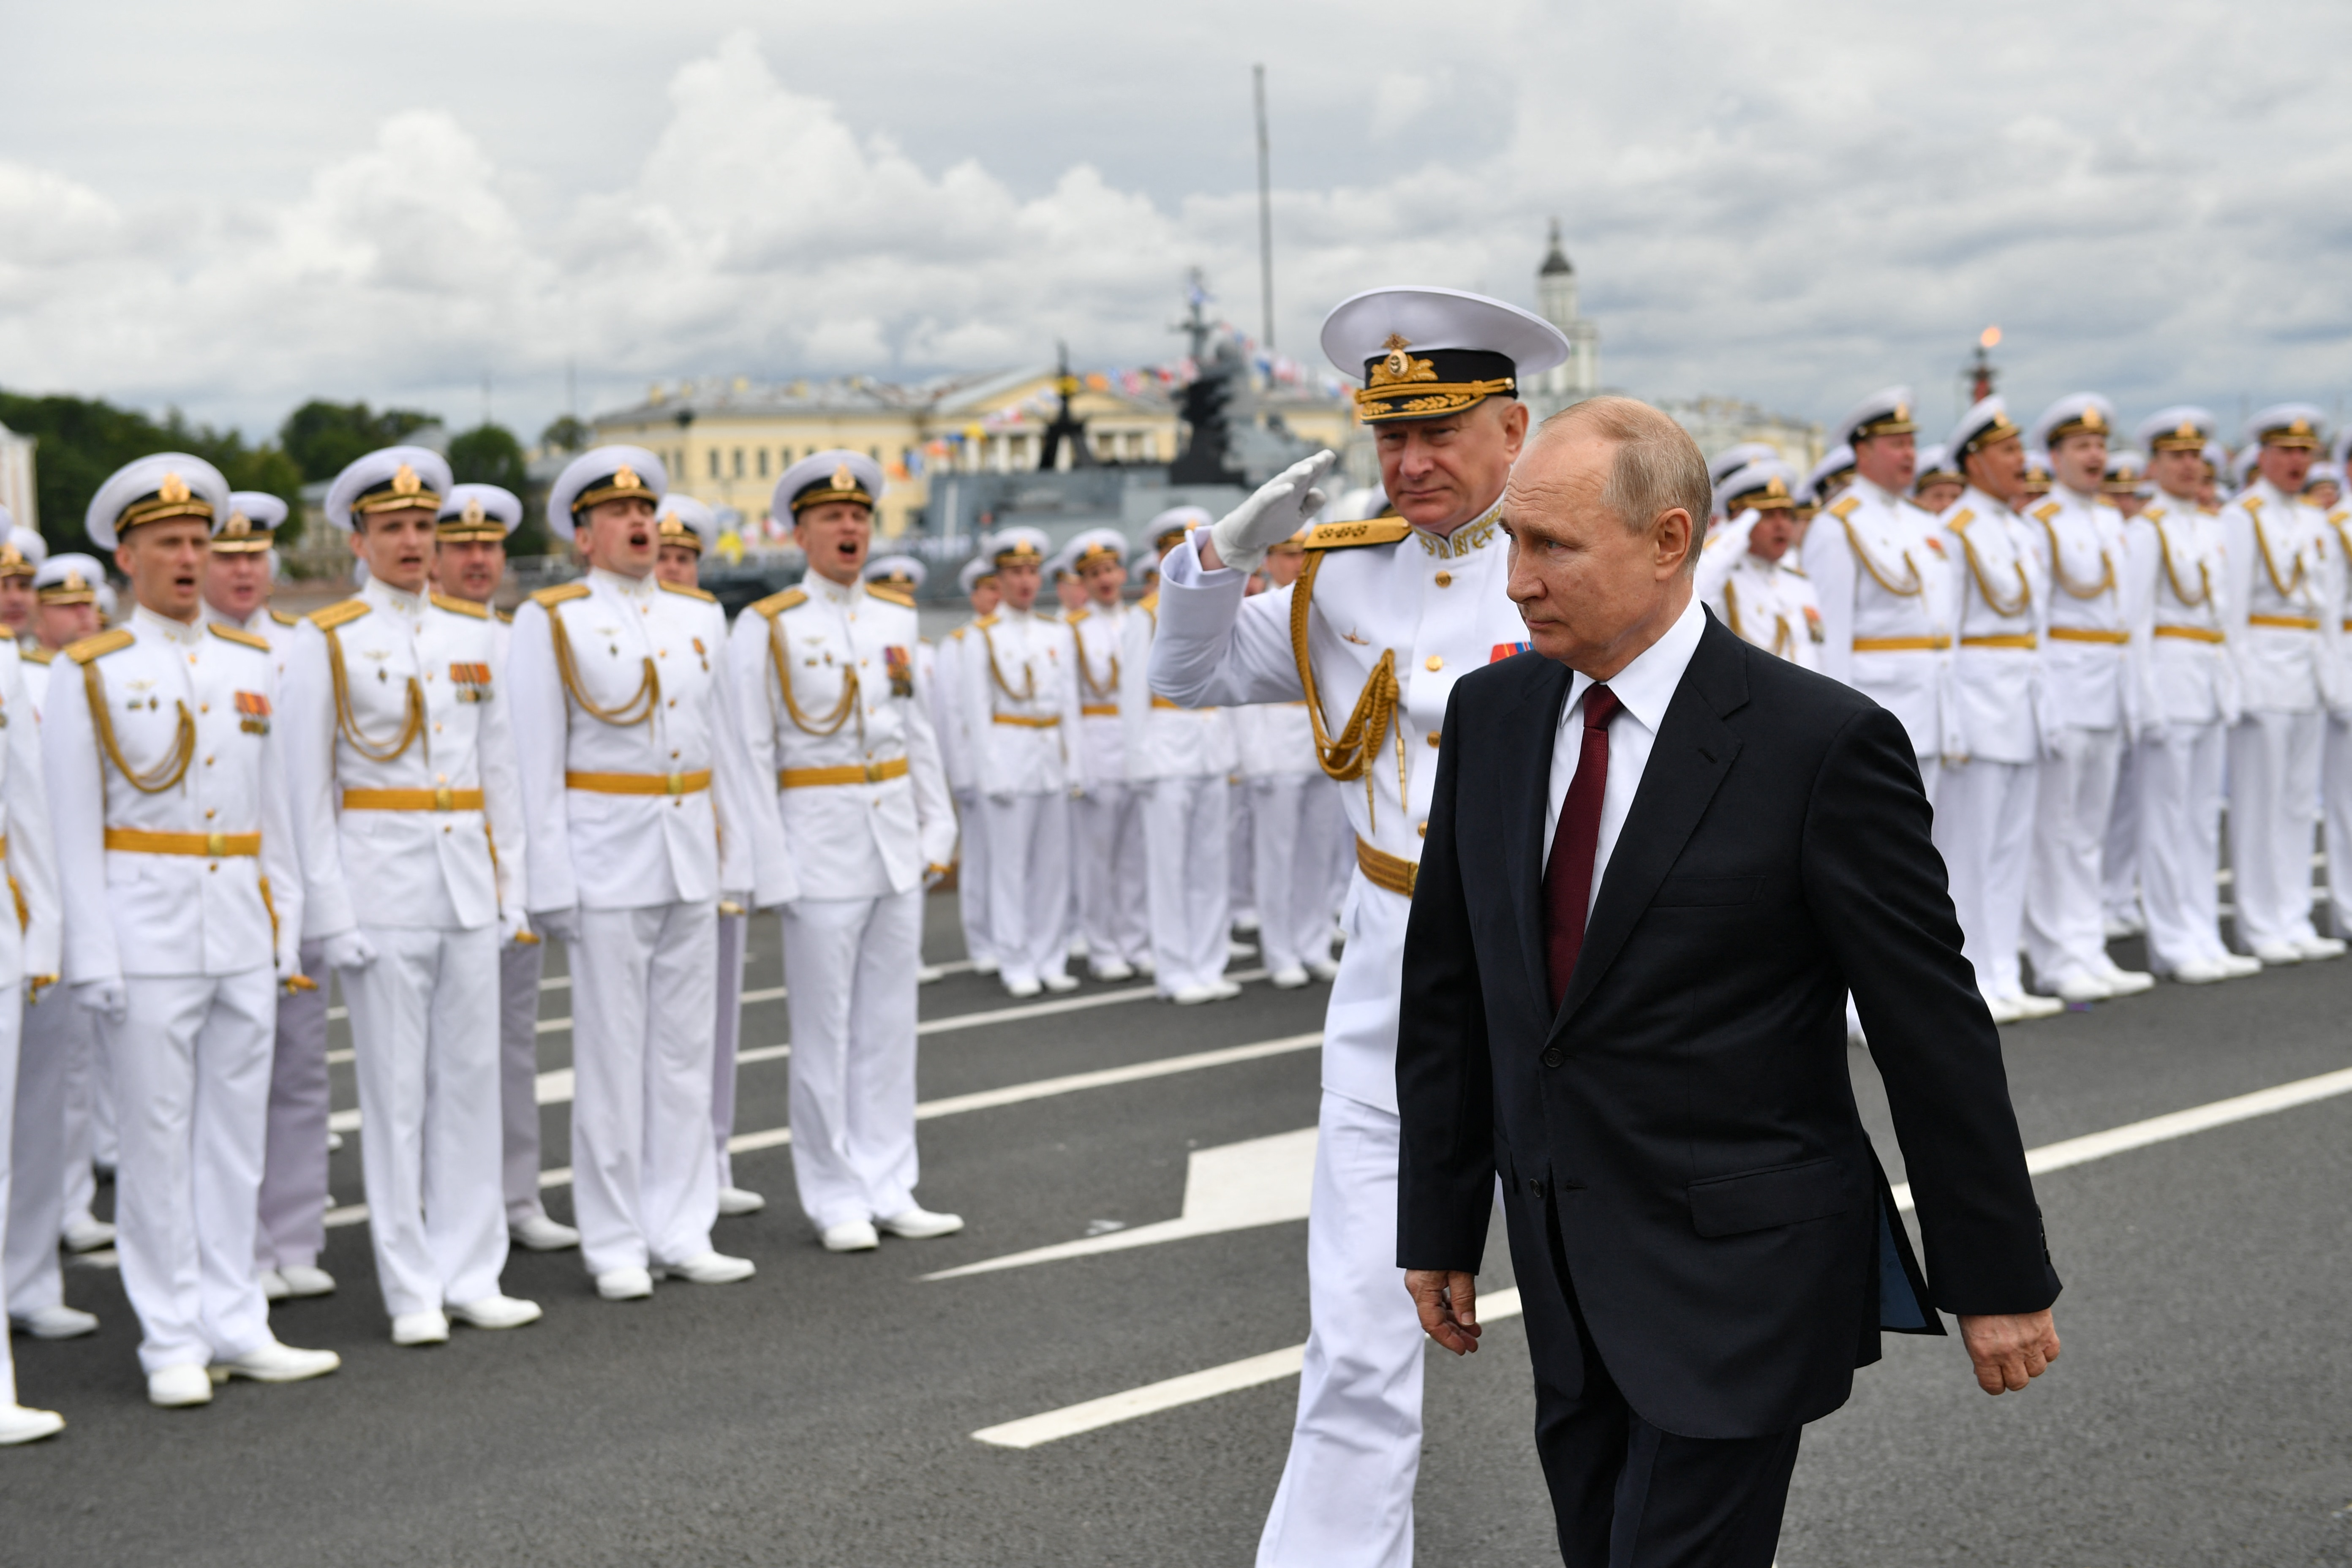 Russian President Vladimir Putin, right, and Commander-in-Chief of the Russian Navy, Admiral Nikolai Yevmenov, second right, arrive to attend the Navy Day parade in St. Petersburg on July 25, 2021. (Photo by ALEXEY NIKOLSKY/SPUTNIK/AFP via Getty Images)